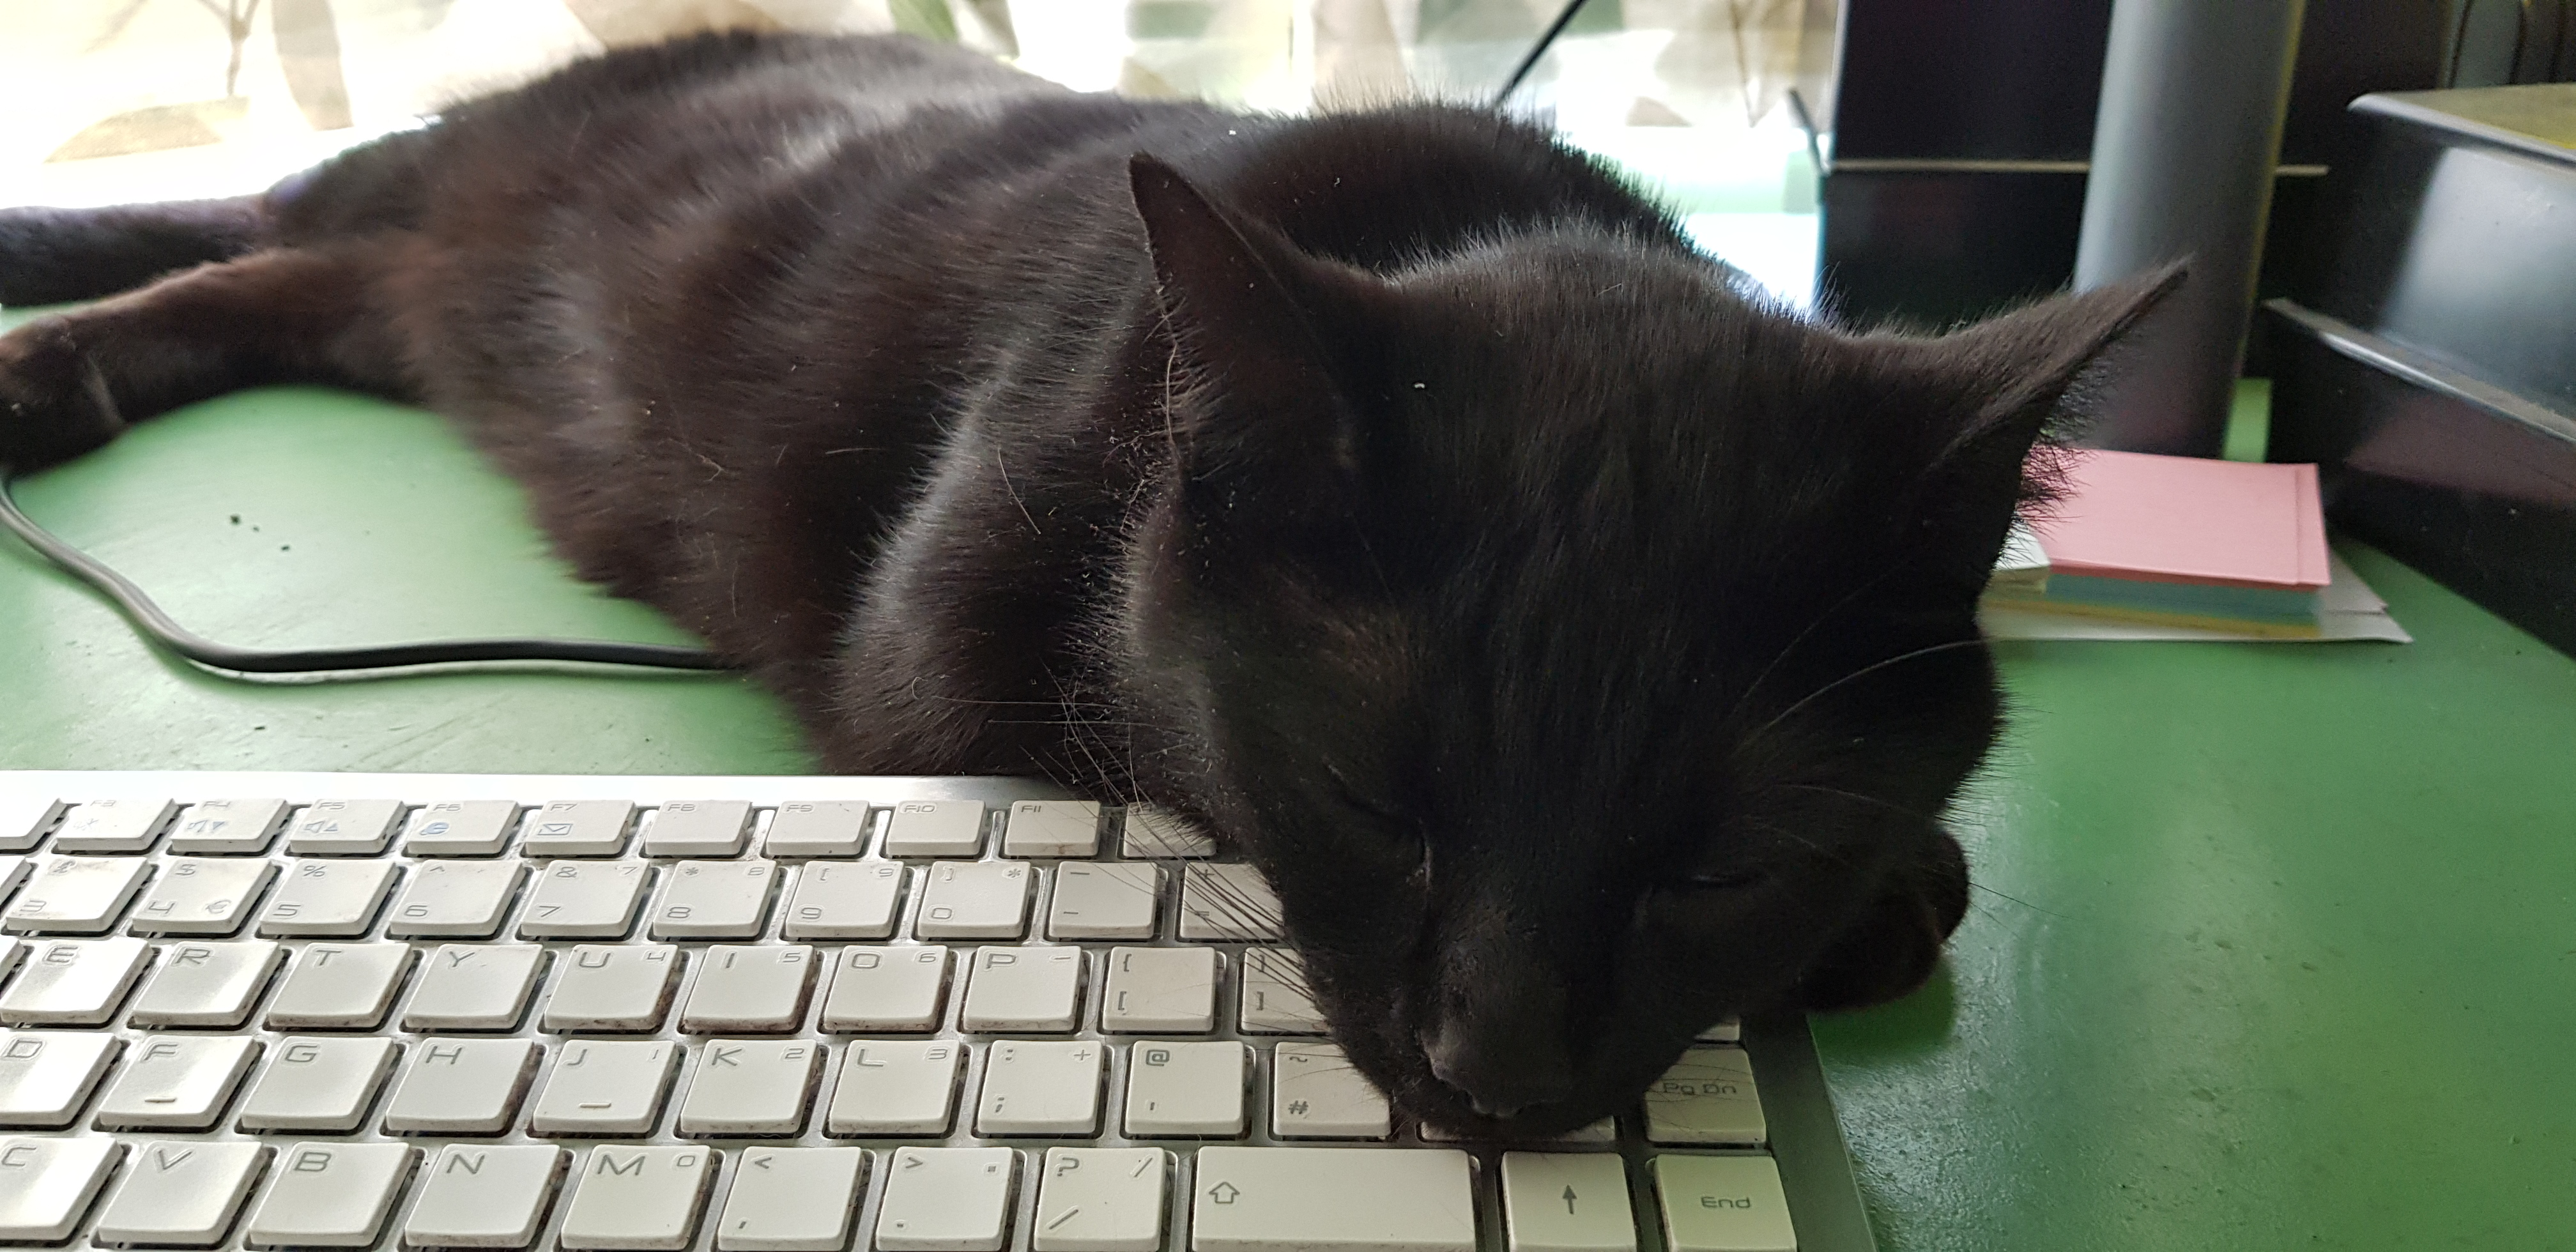 Apparently Keyboards Make Great Pillows